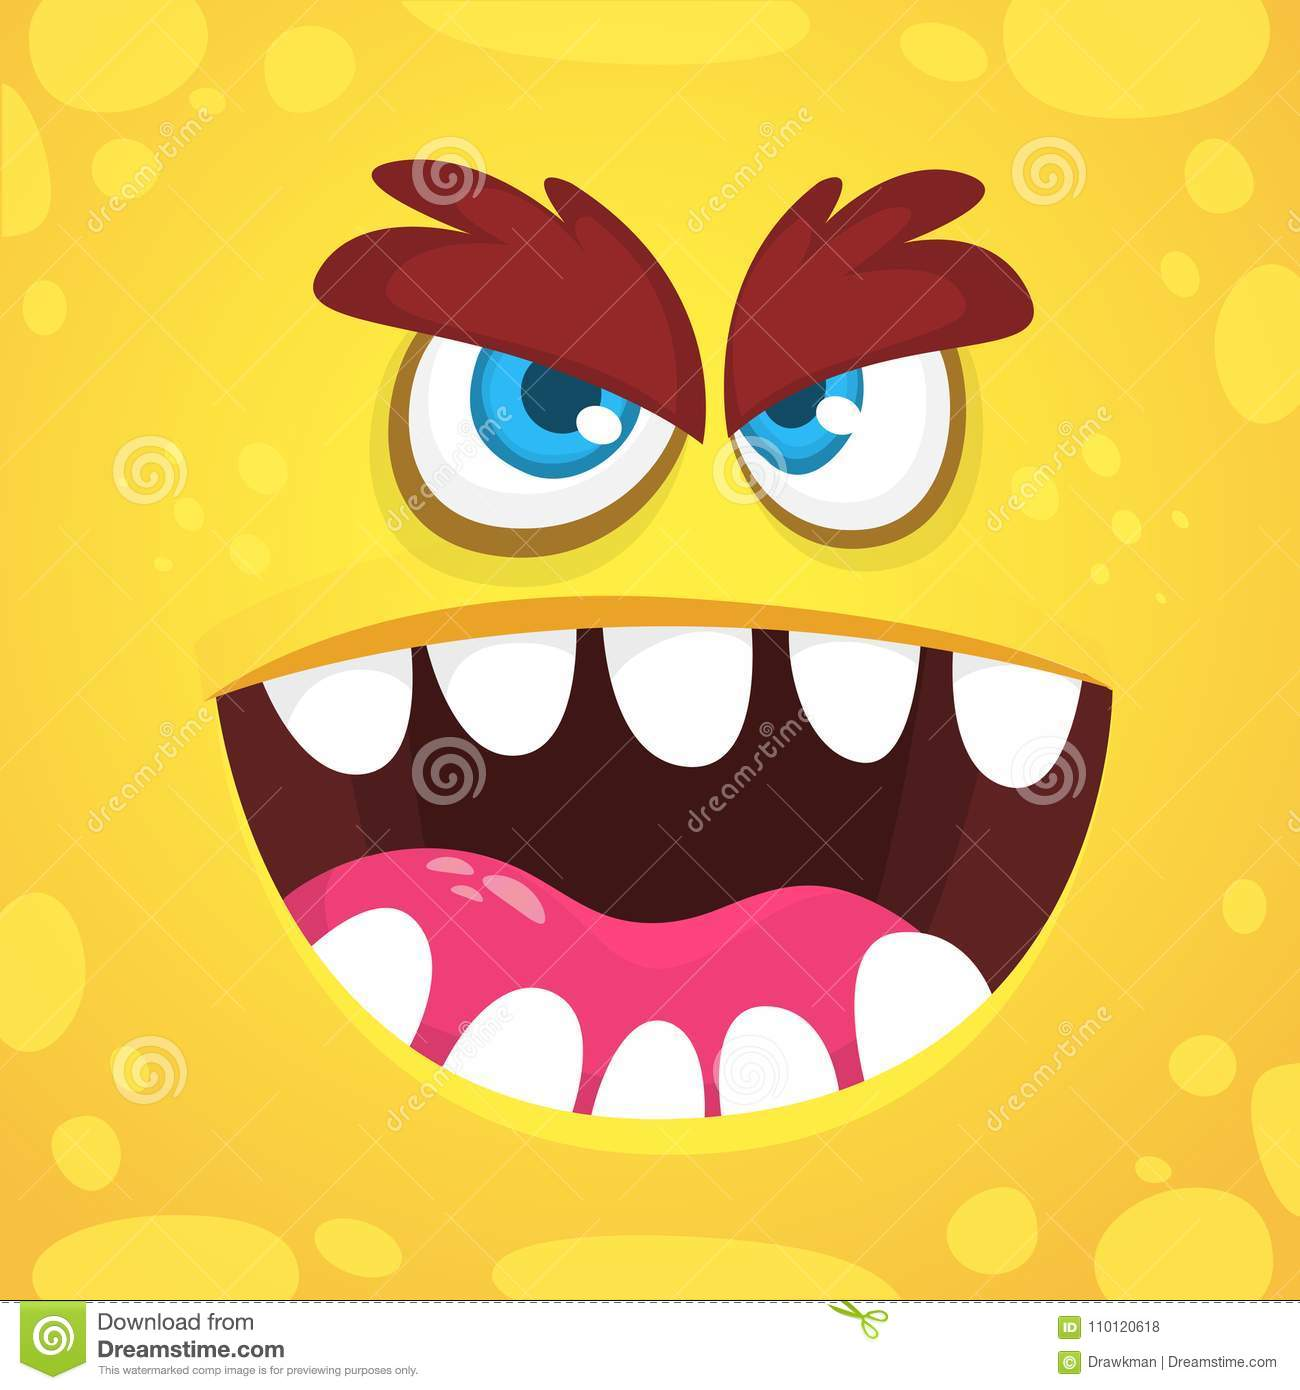 Angry cartoon monster face. Vector Halloween orange monster avatar. Design for print, children book, party decoration.